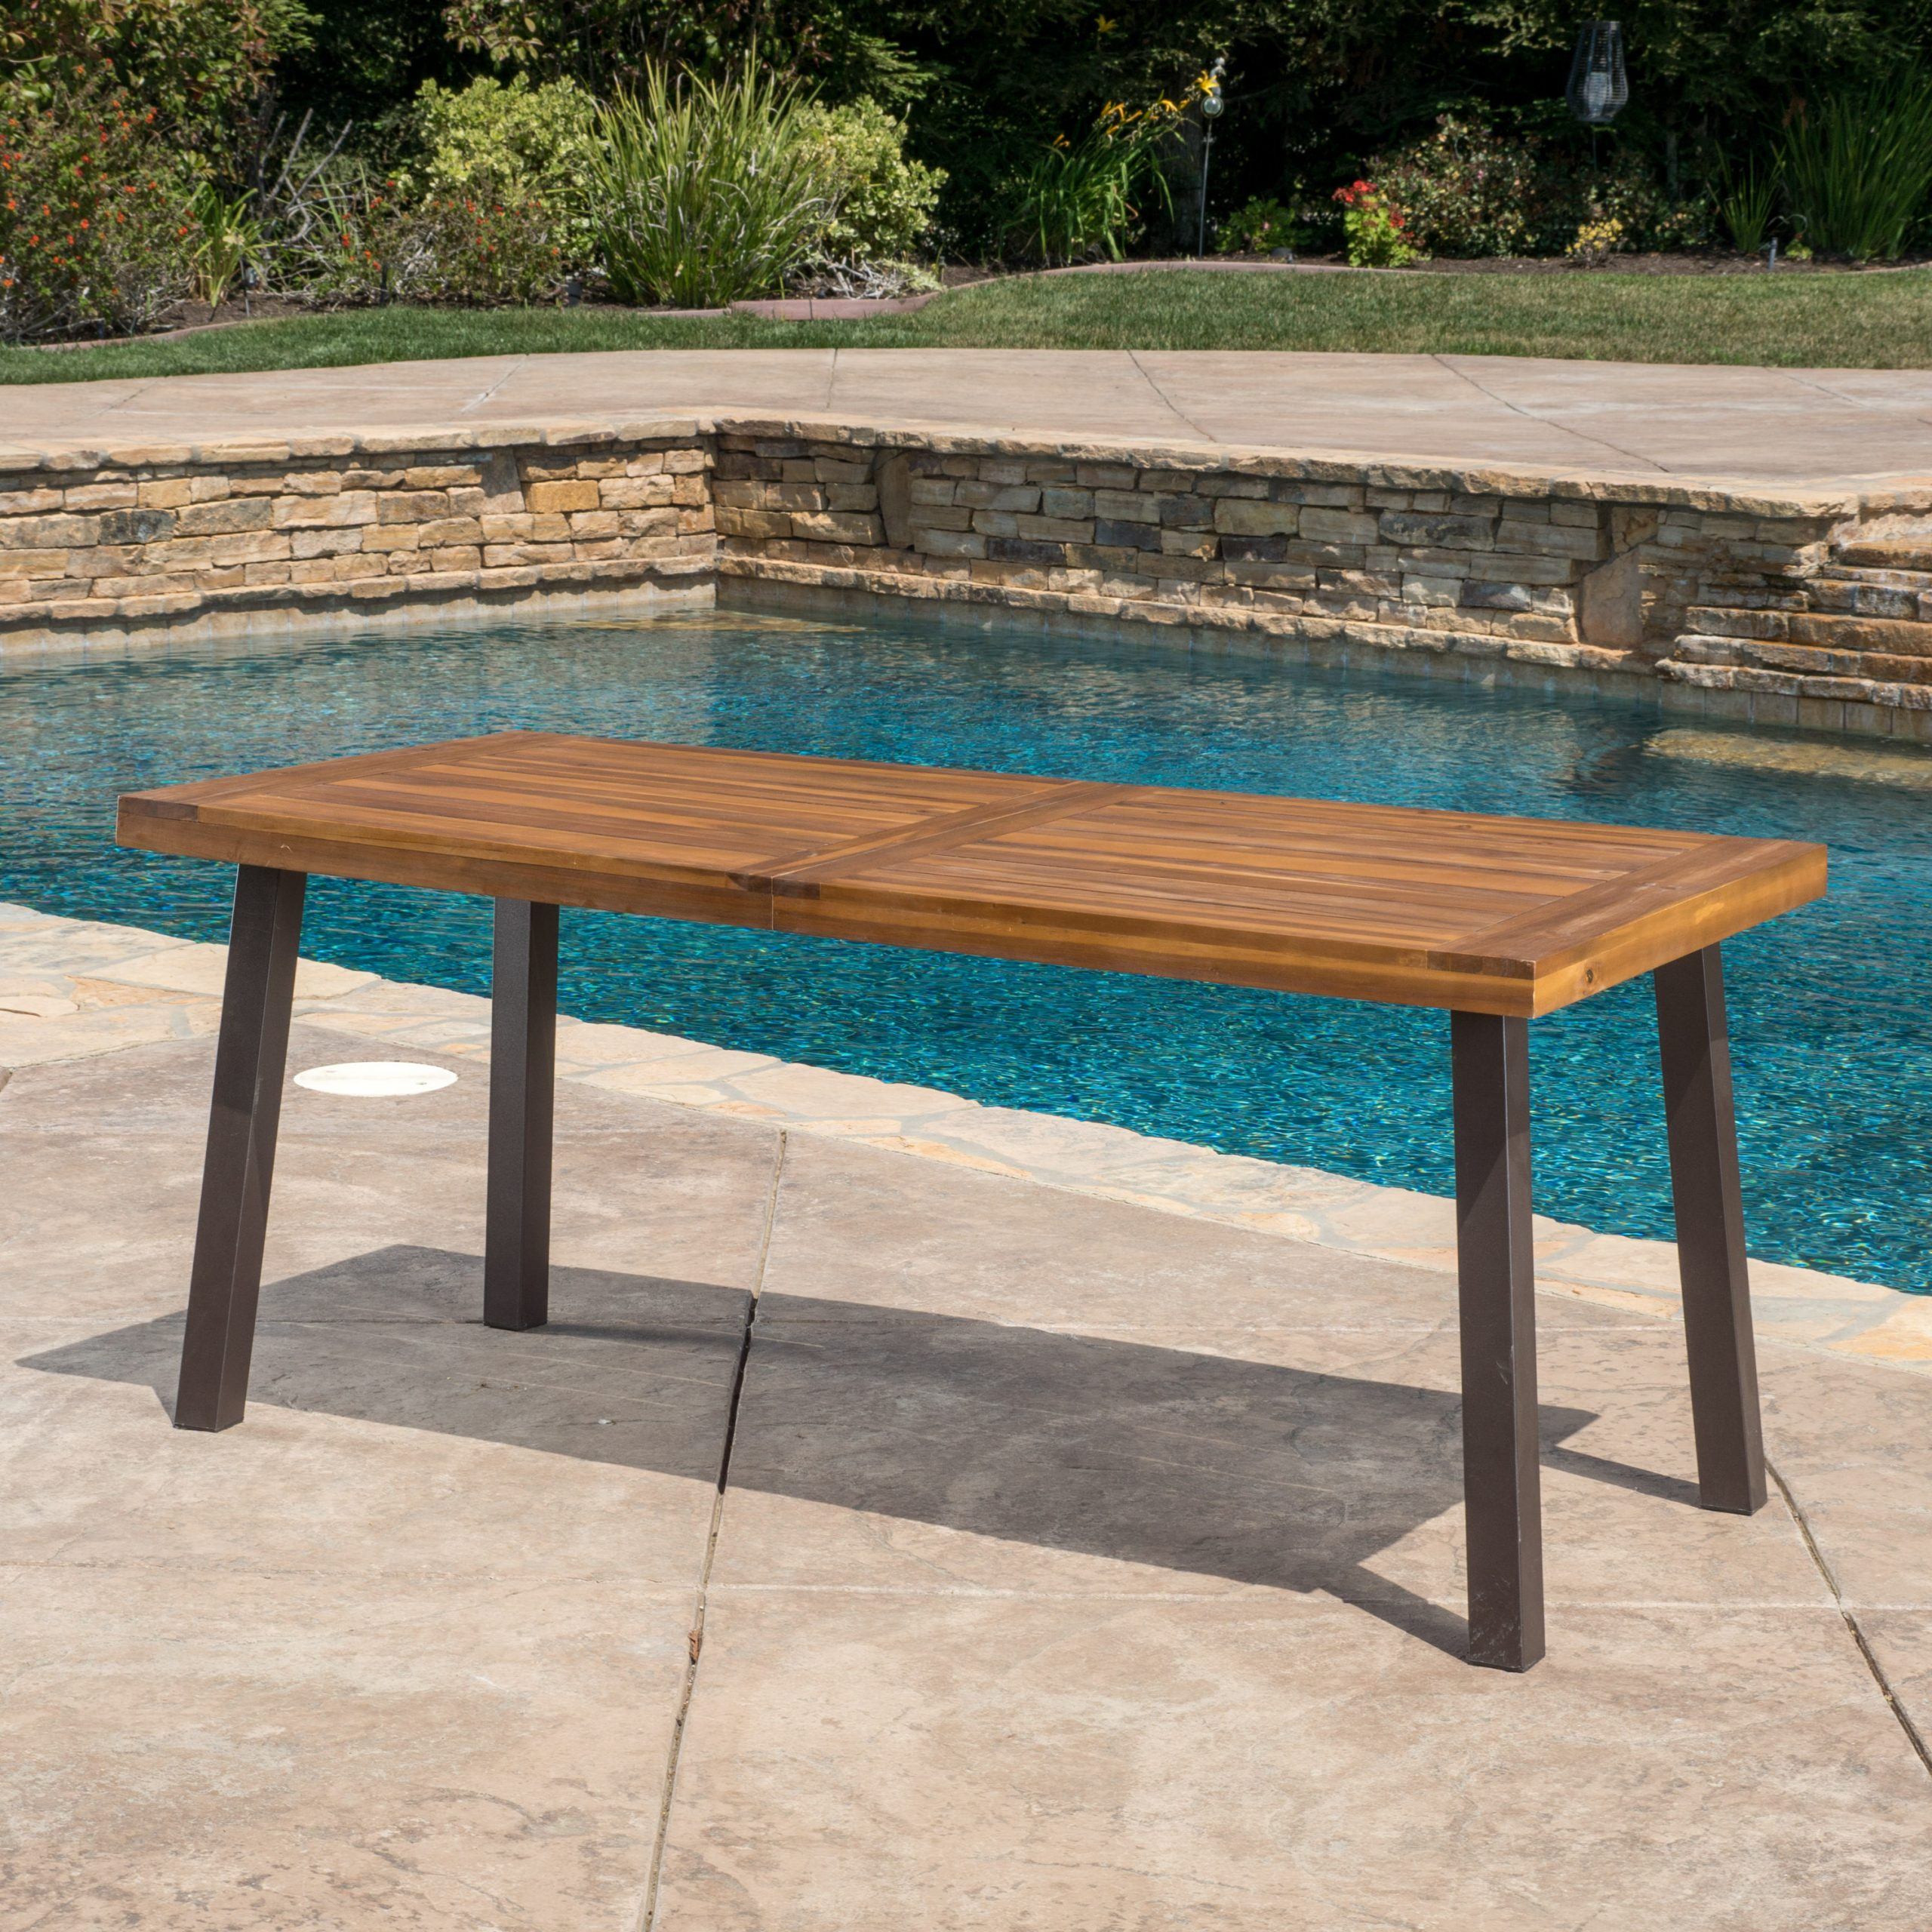 Famous Paul Outdoor Acacia Wood Dining Table, Teak Finish – Walmart In Acacia Wood Top Dining Tables With Iron Legs On Raw Metal (View 30 of 30)